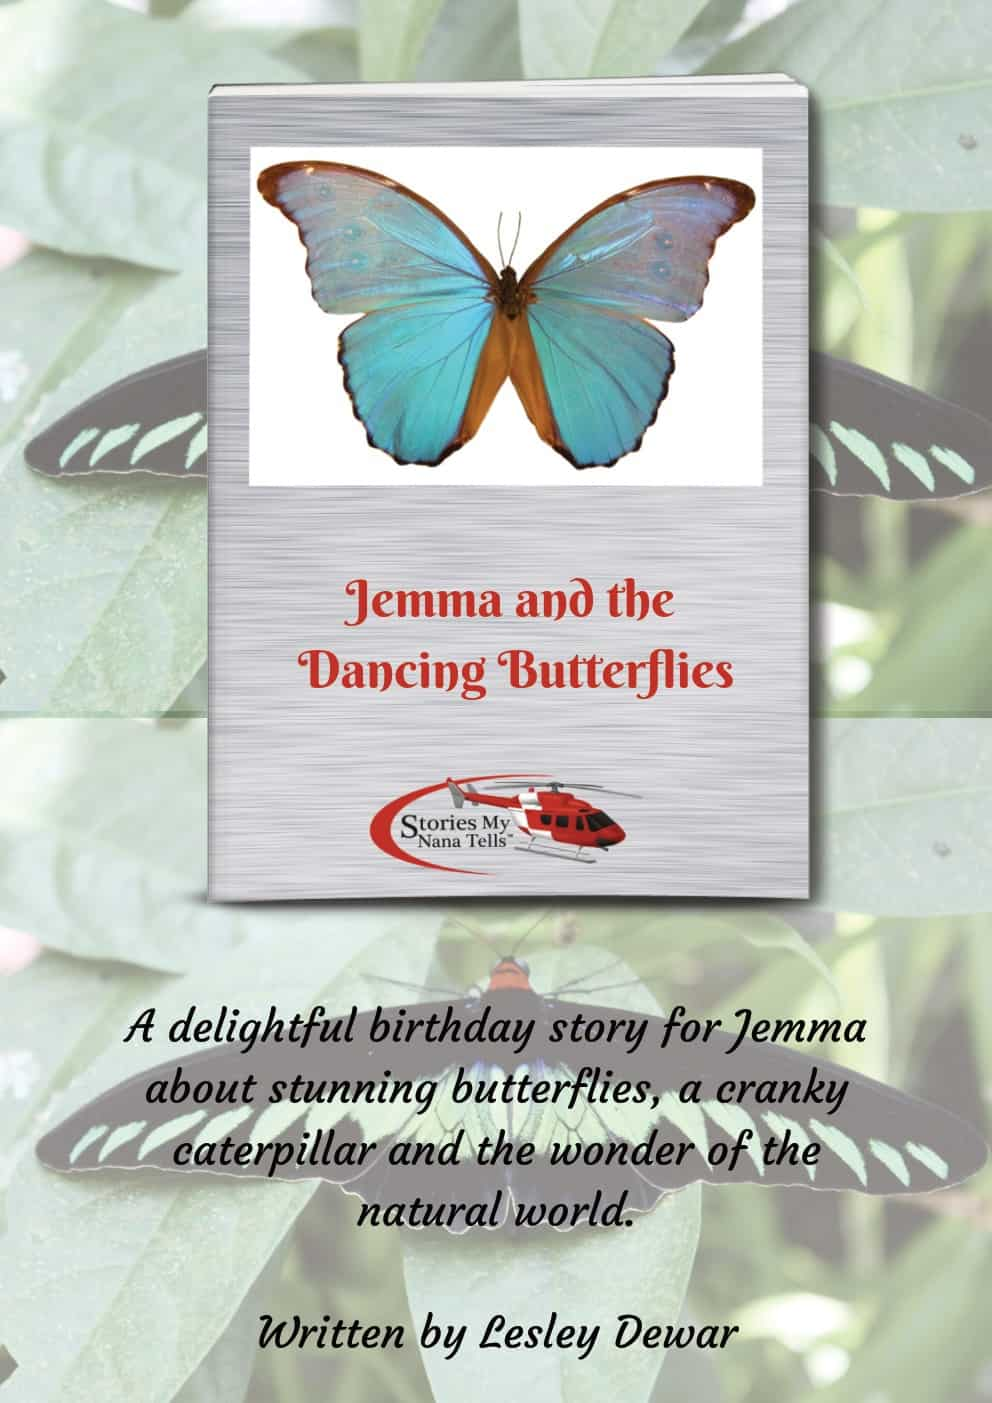 Cover page of Jemma and the Dancing Butterflies